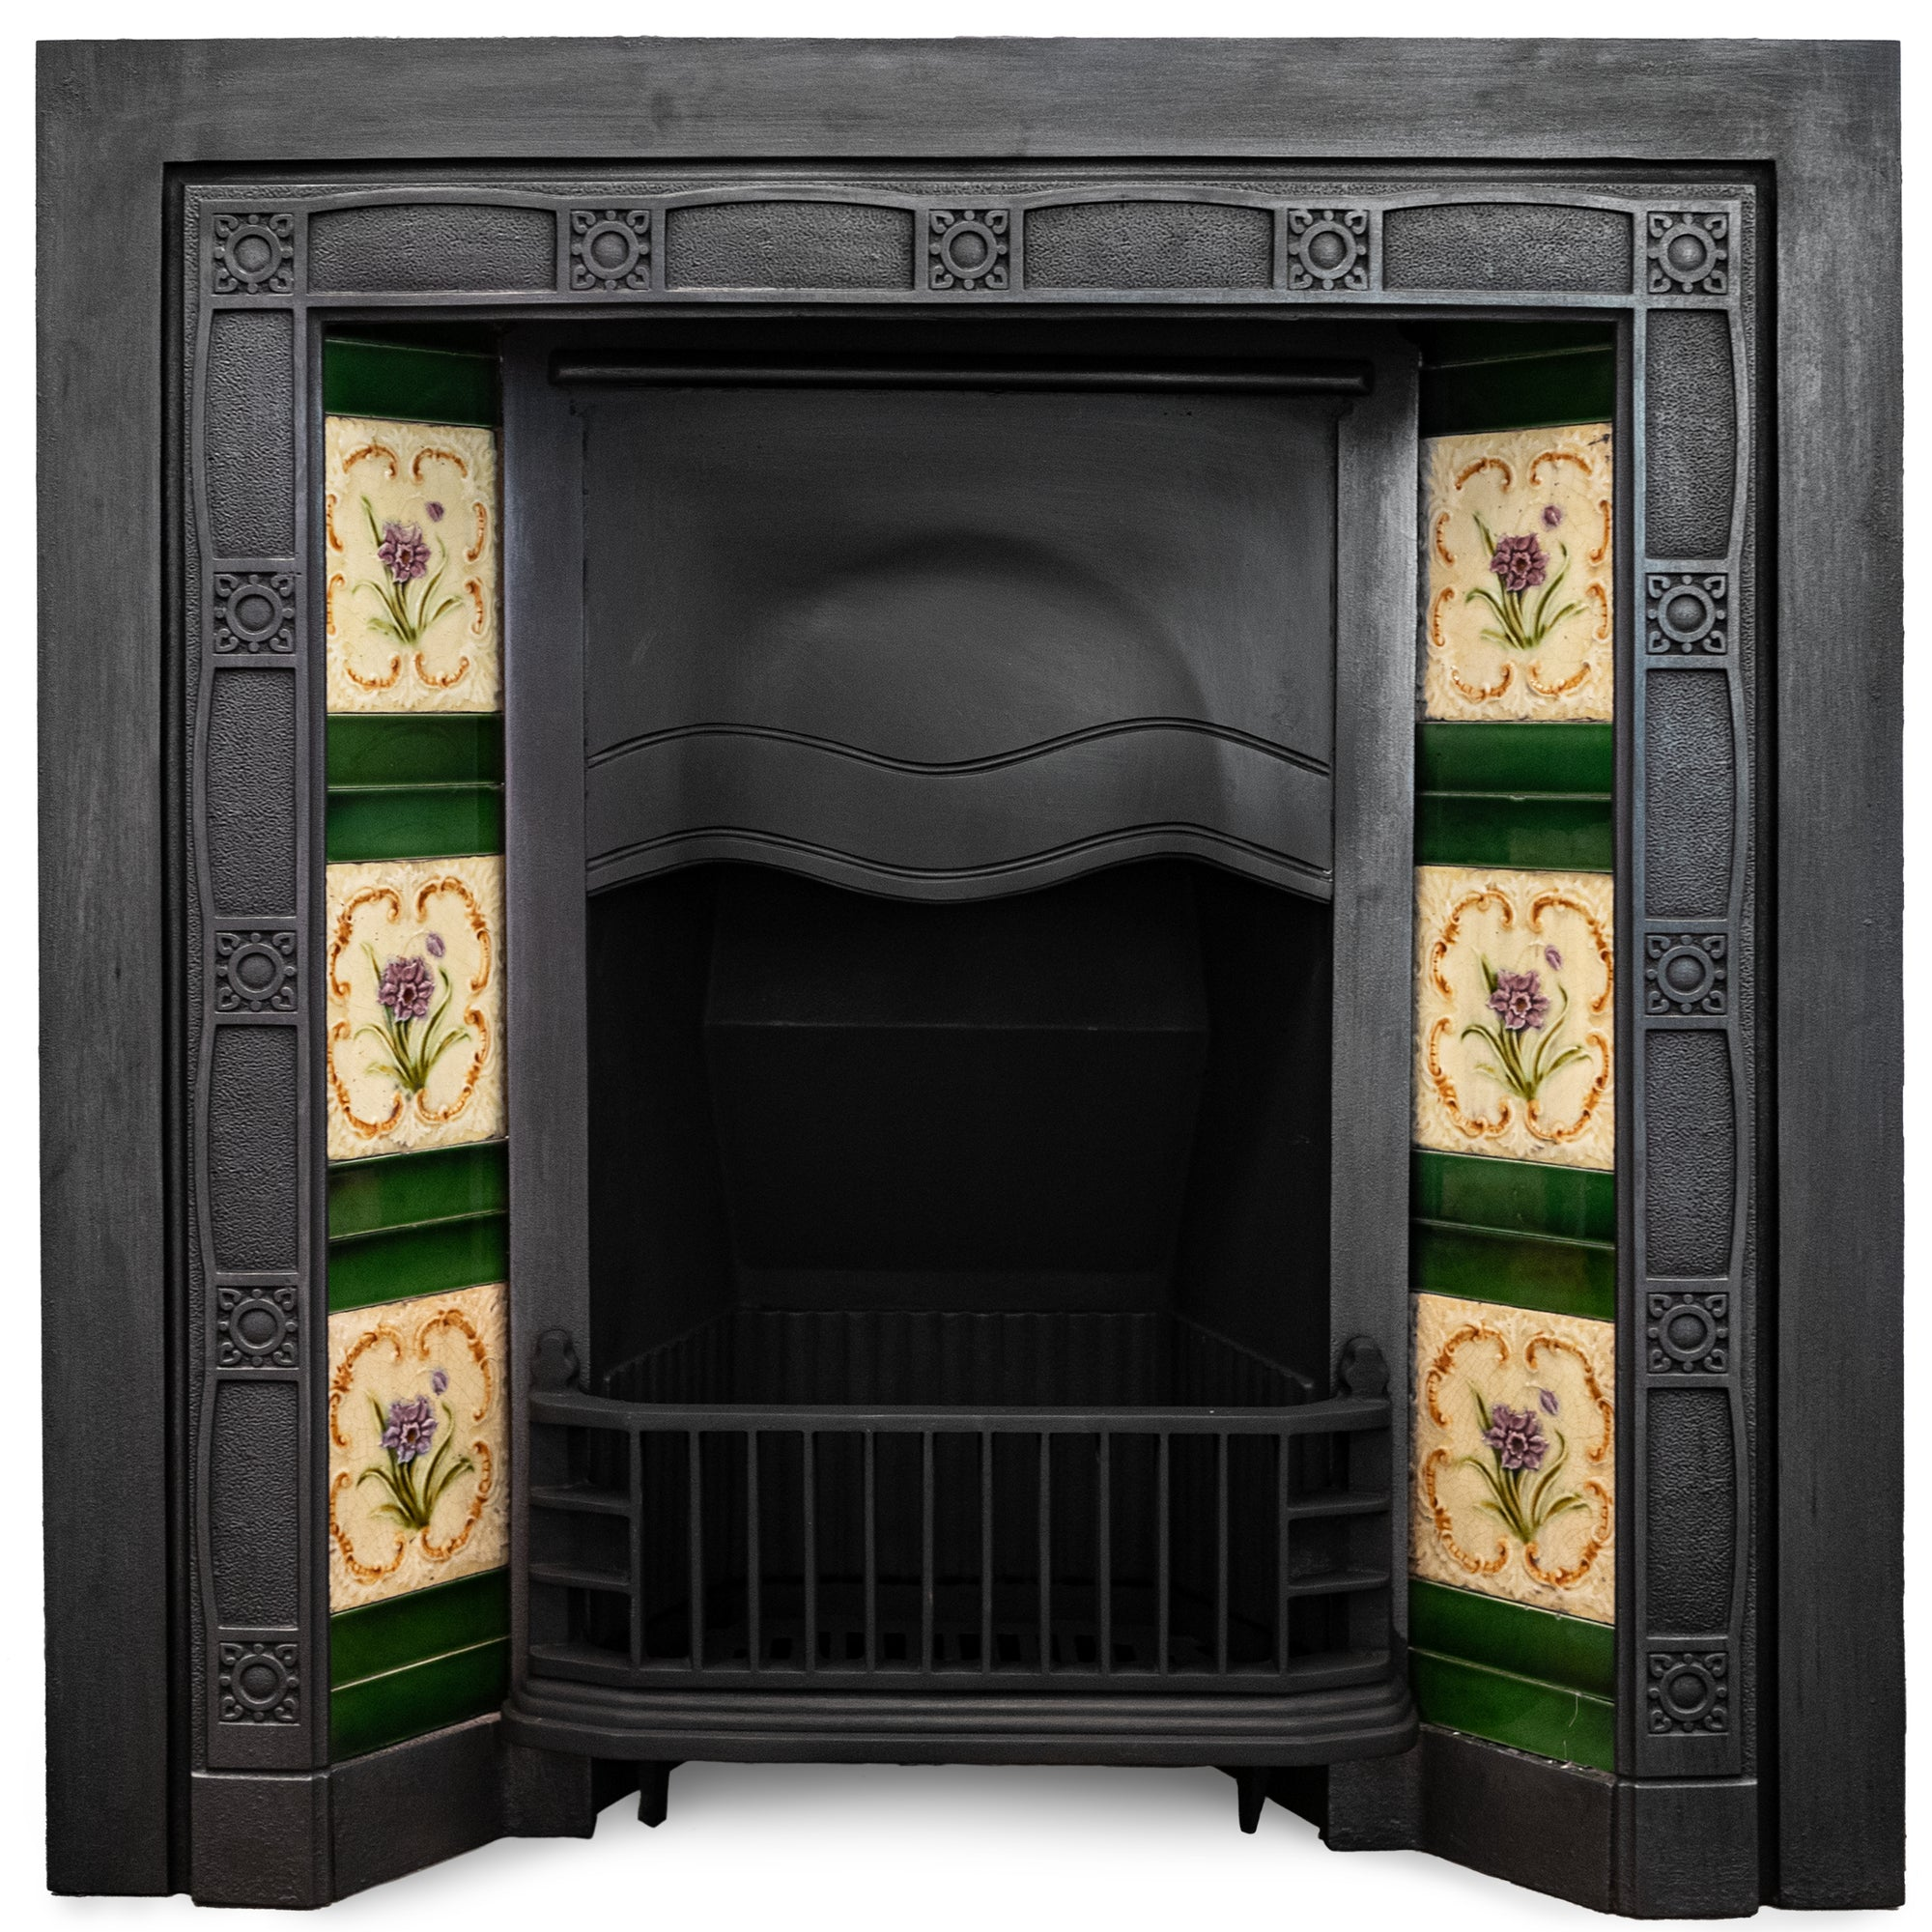 Antique Edwardian Cast Iron Fireplace Insert with Original Tiles | The Architectural Forum